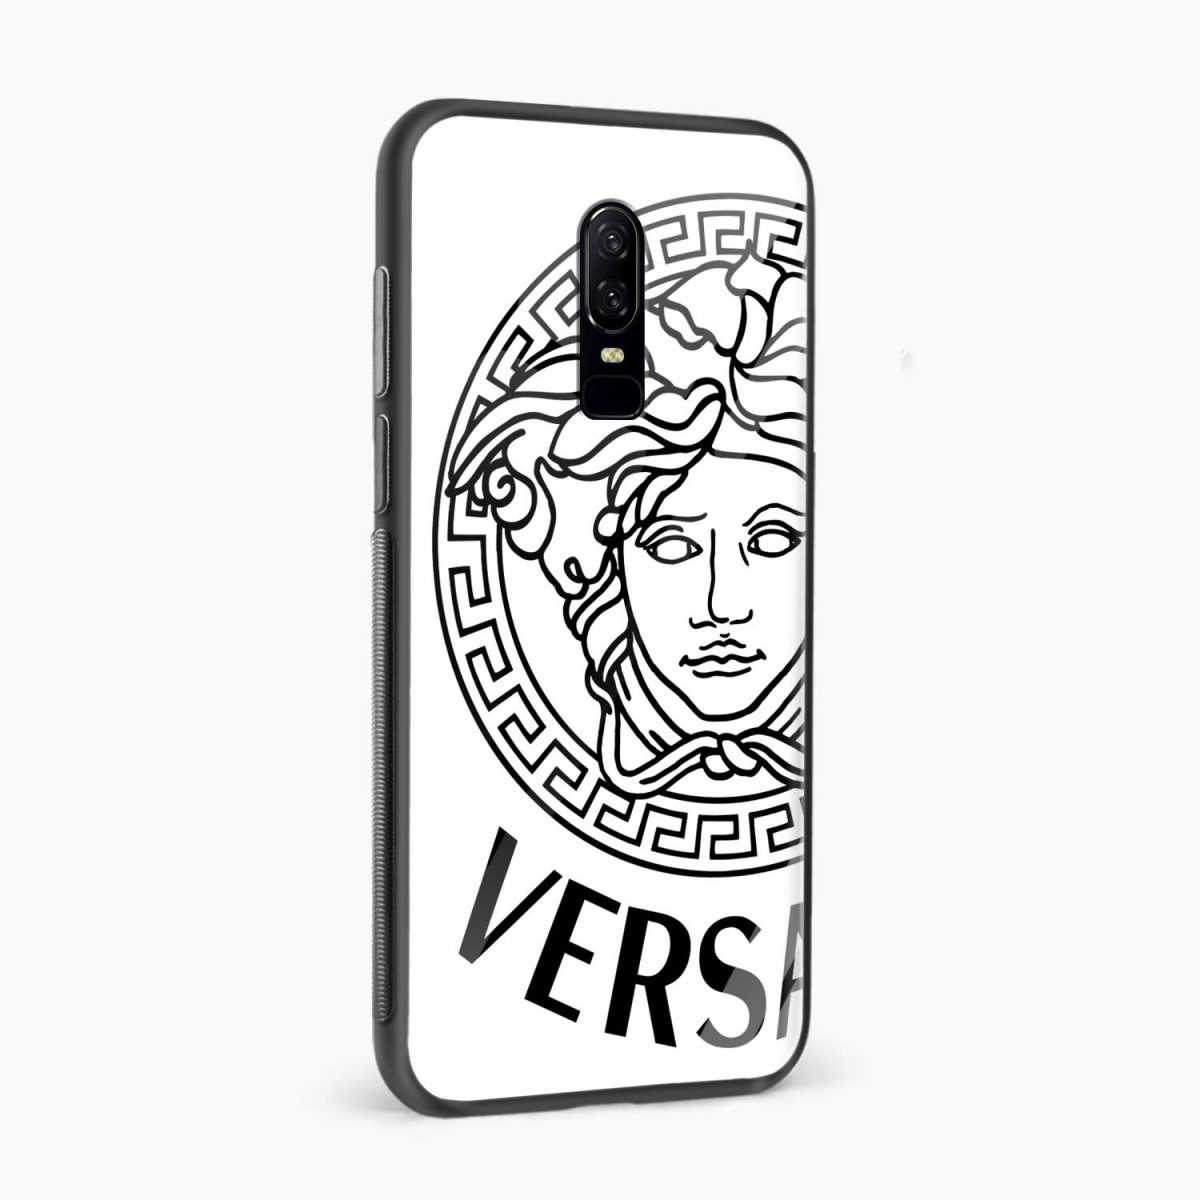 versace black white side view oneplus 6 back cover